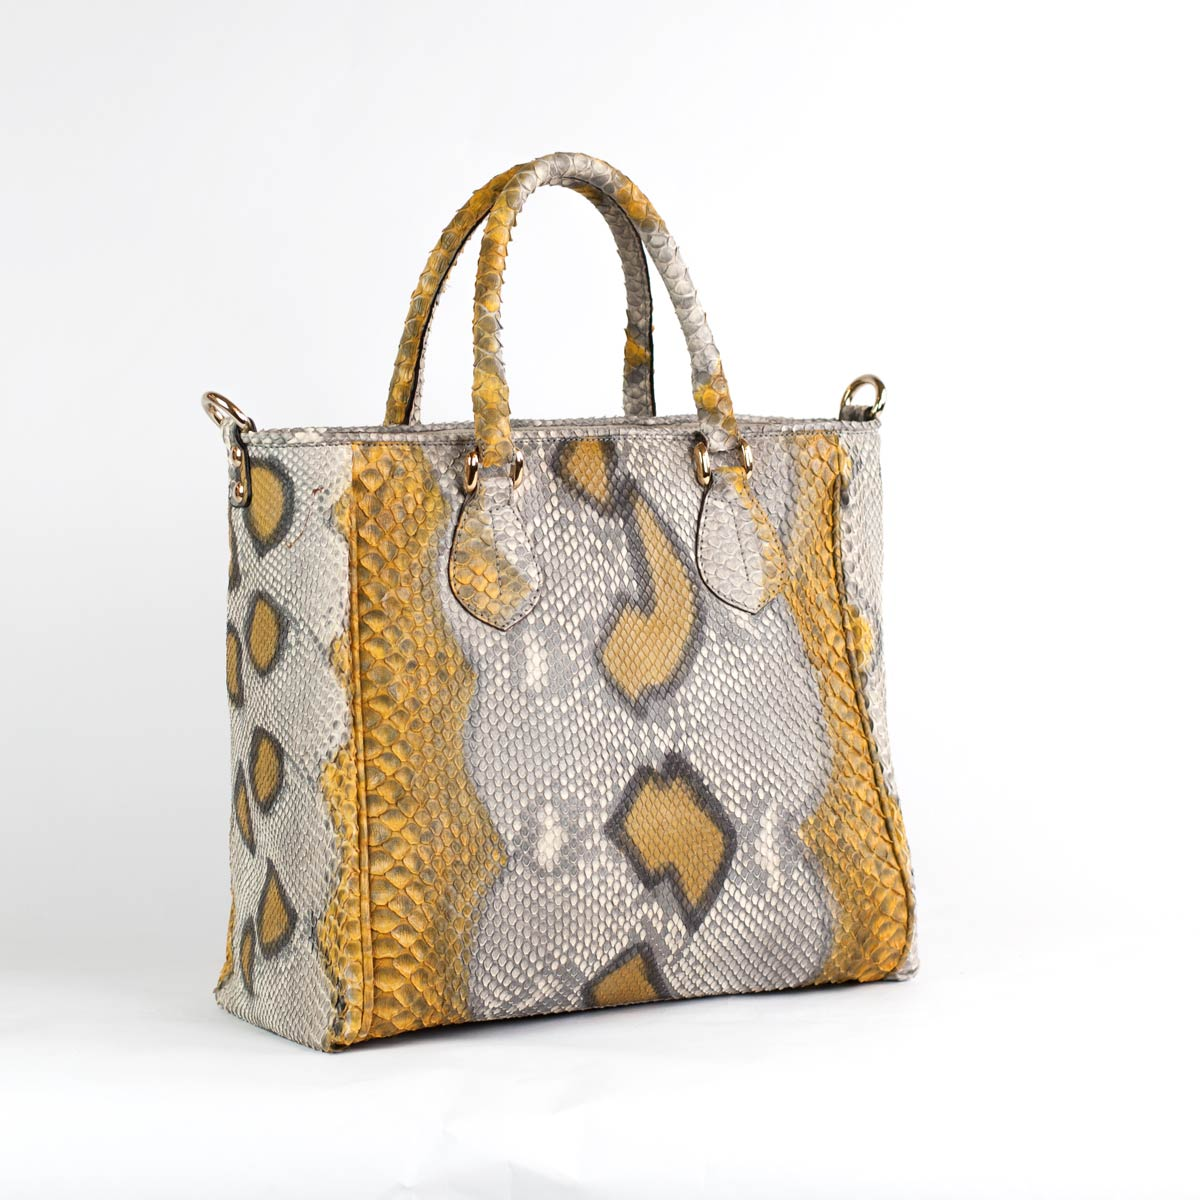 Handbag 5032 in python leather